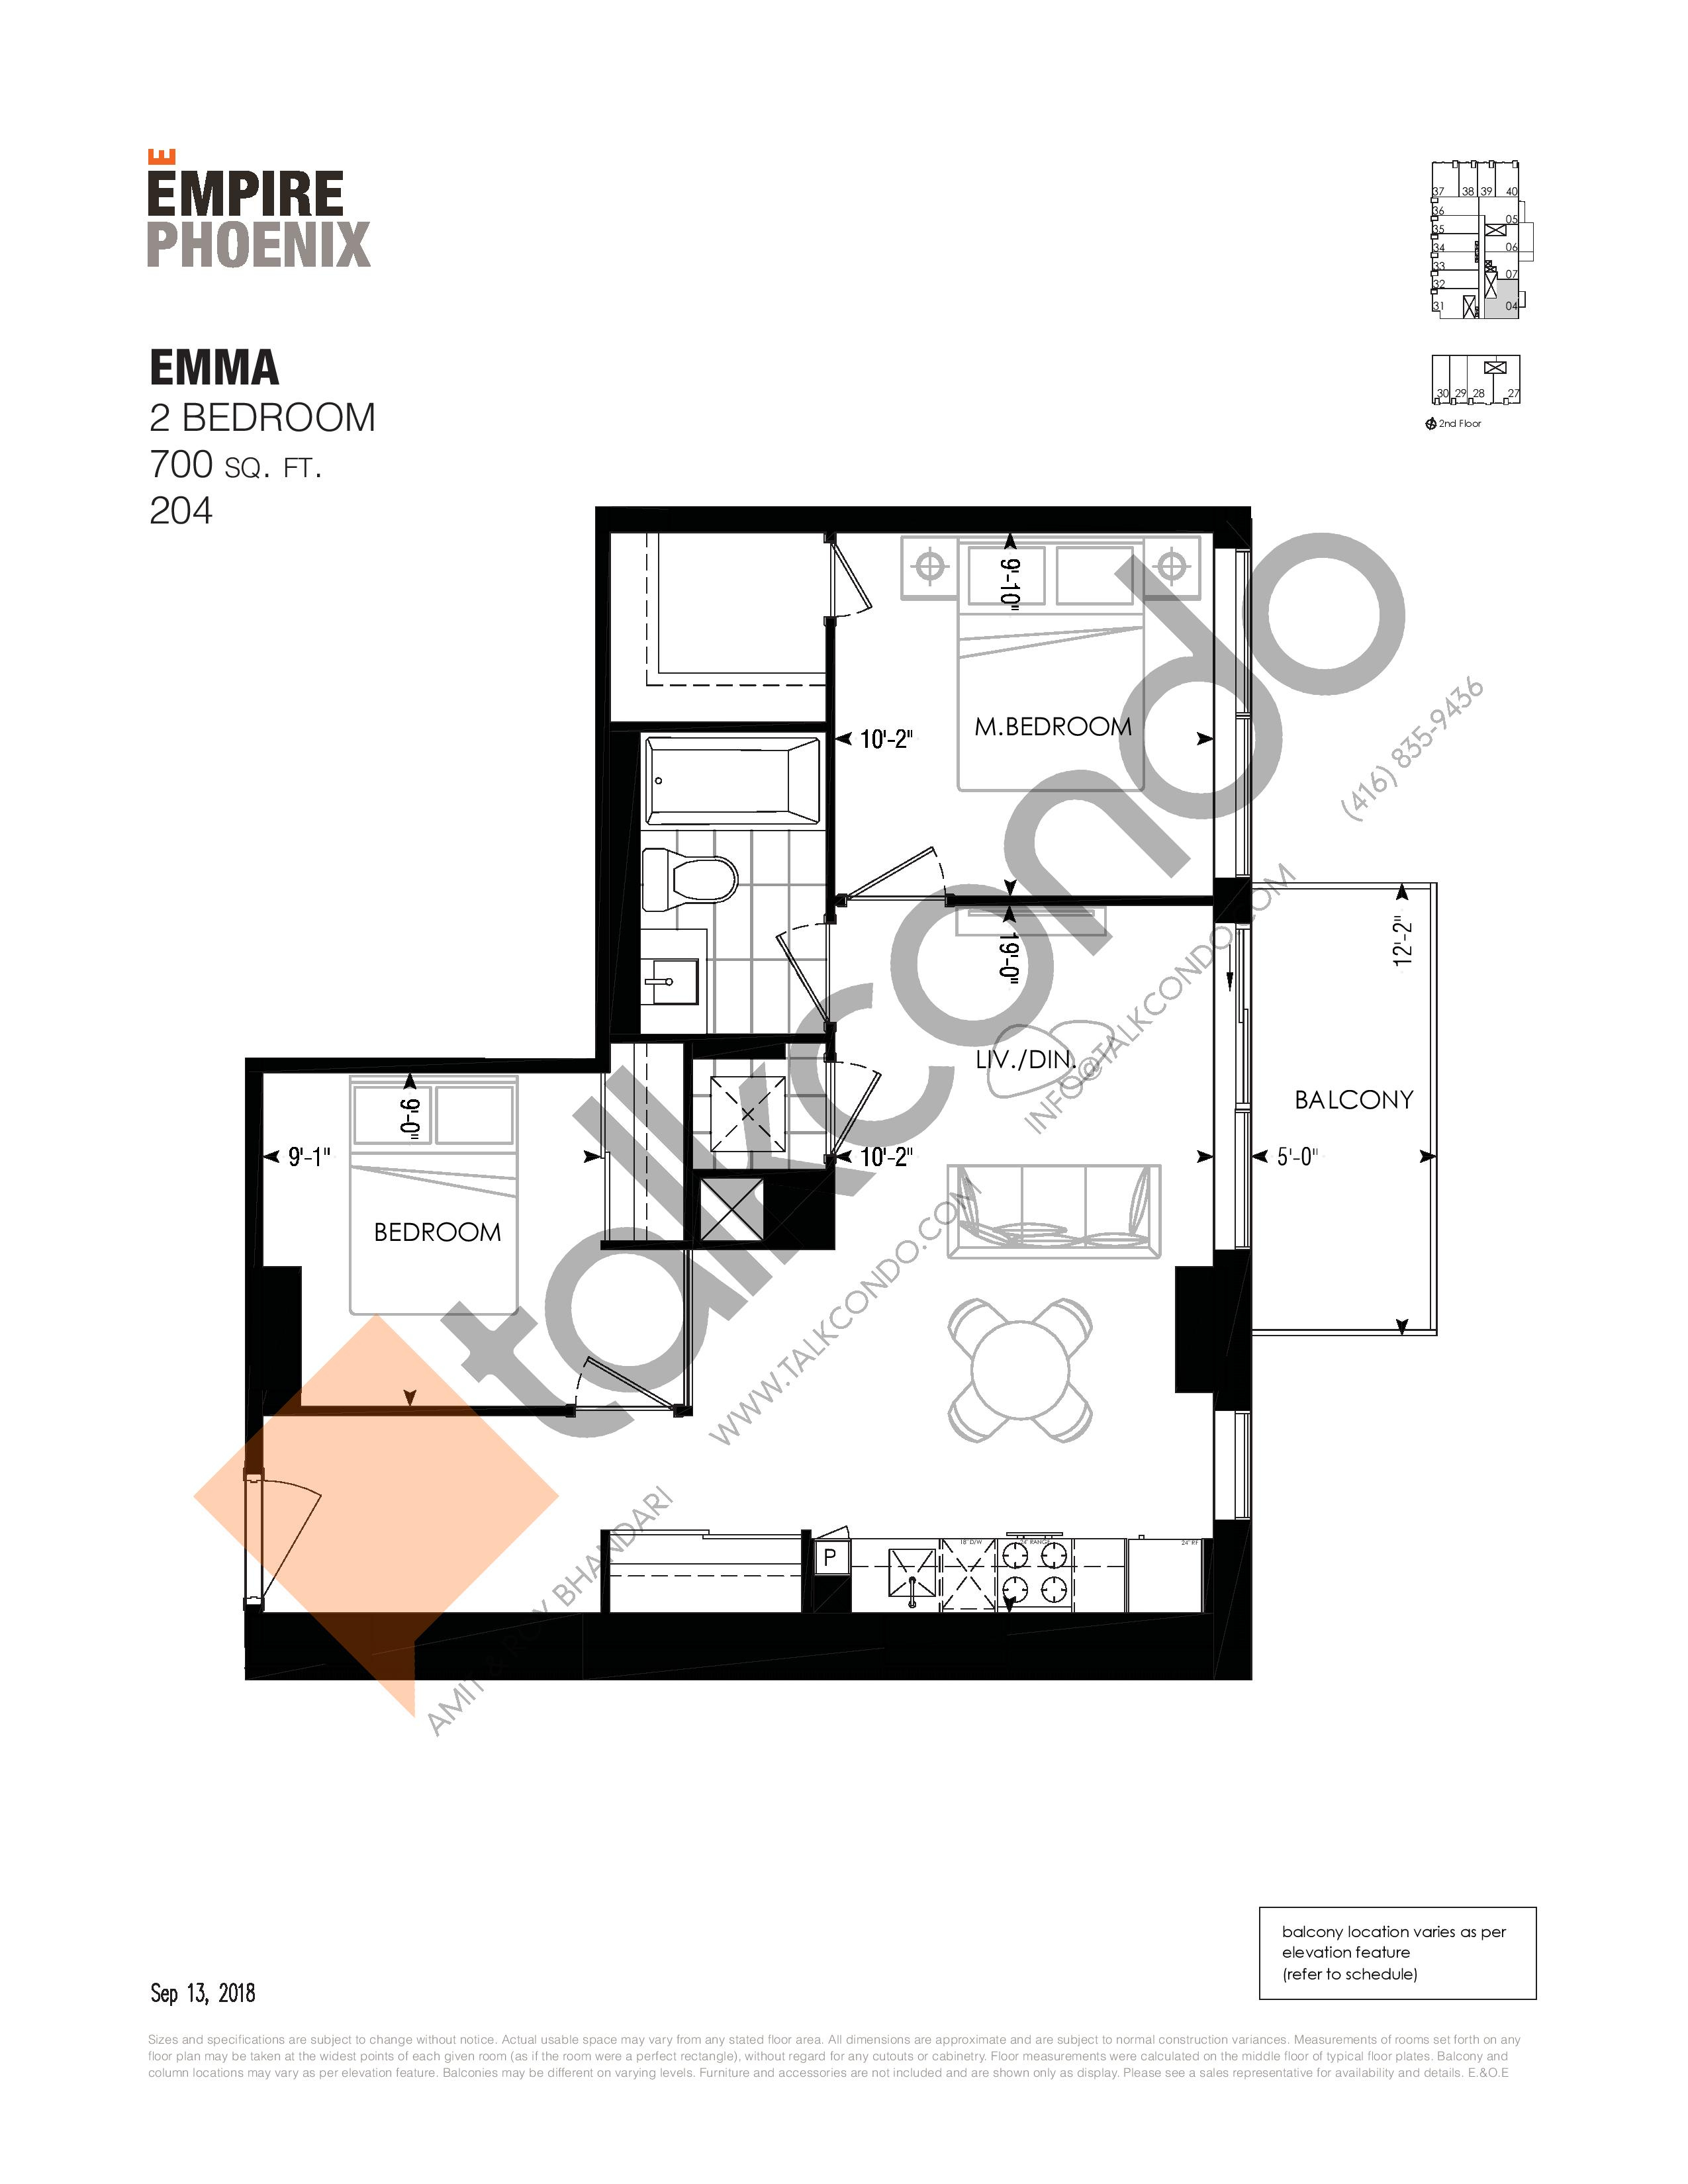 Emma Floor Plan at Empire Phoenix Phase 2 Condos - 700 sq.ft